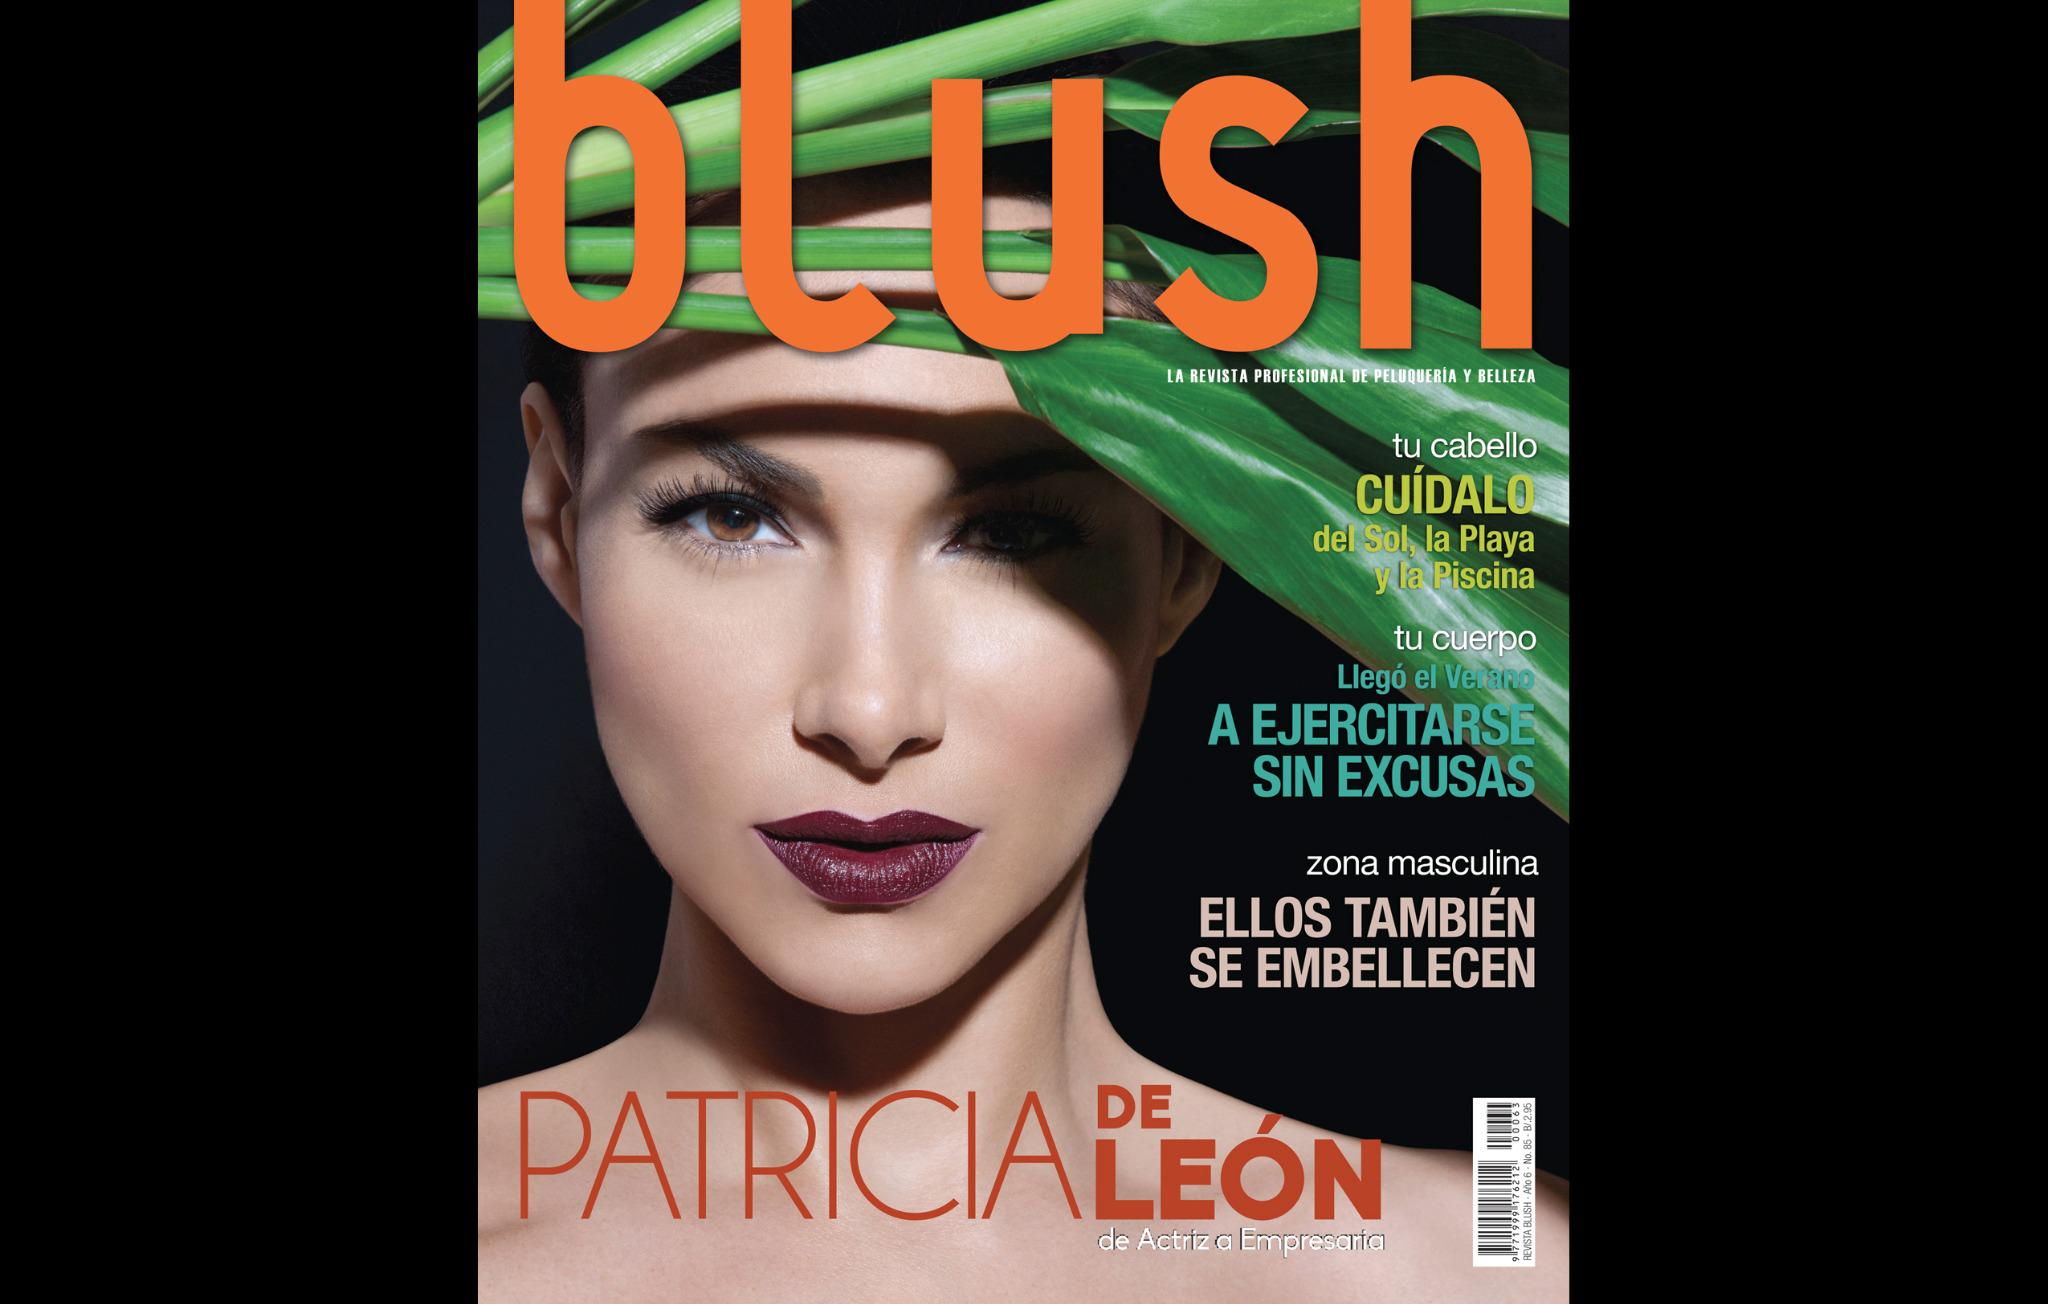 .@PATRICIADELEONB on the cover of @BLUSHPanama! http://t.co/NNY8KRW6er